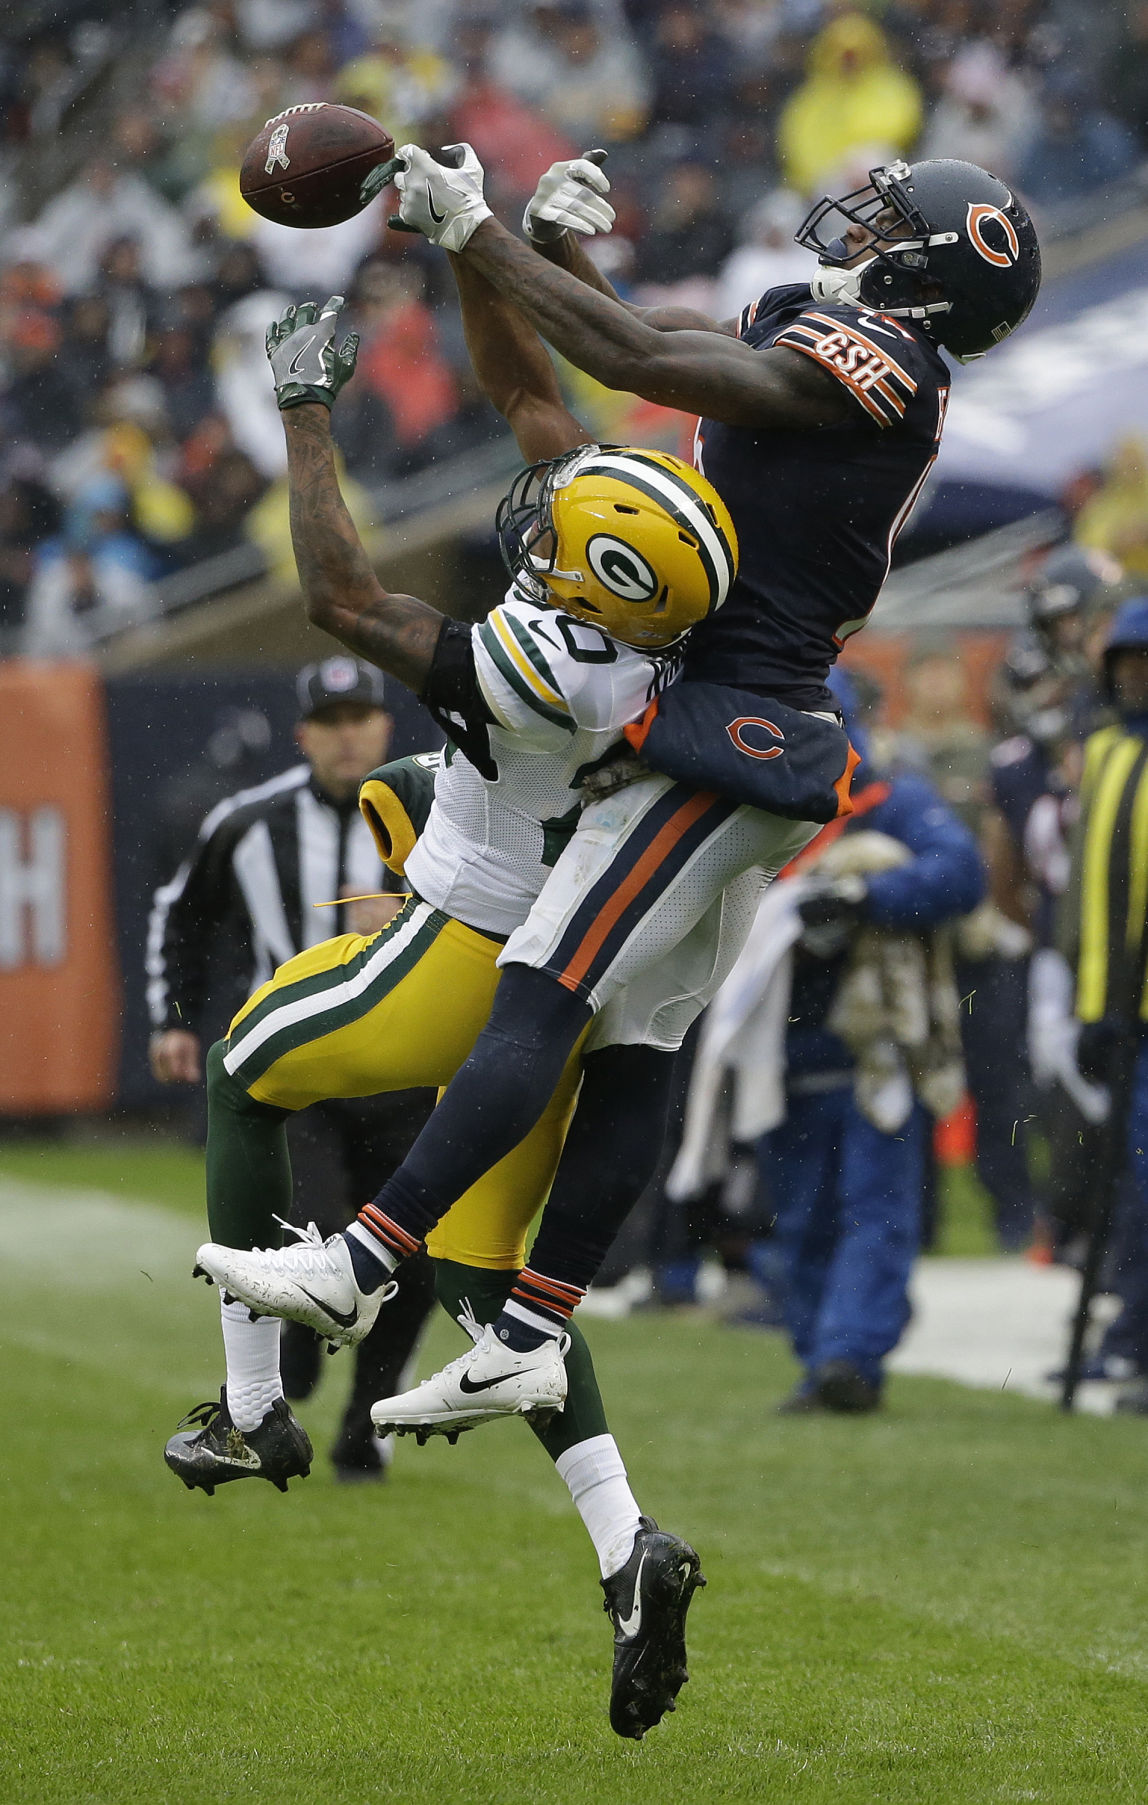 48b0c44c Photos: Green Bay Packers 23, Chicago Bears 16 | Pro football ...